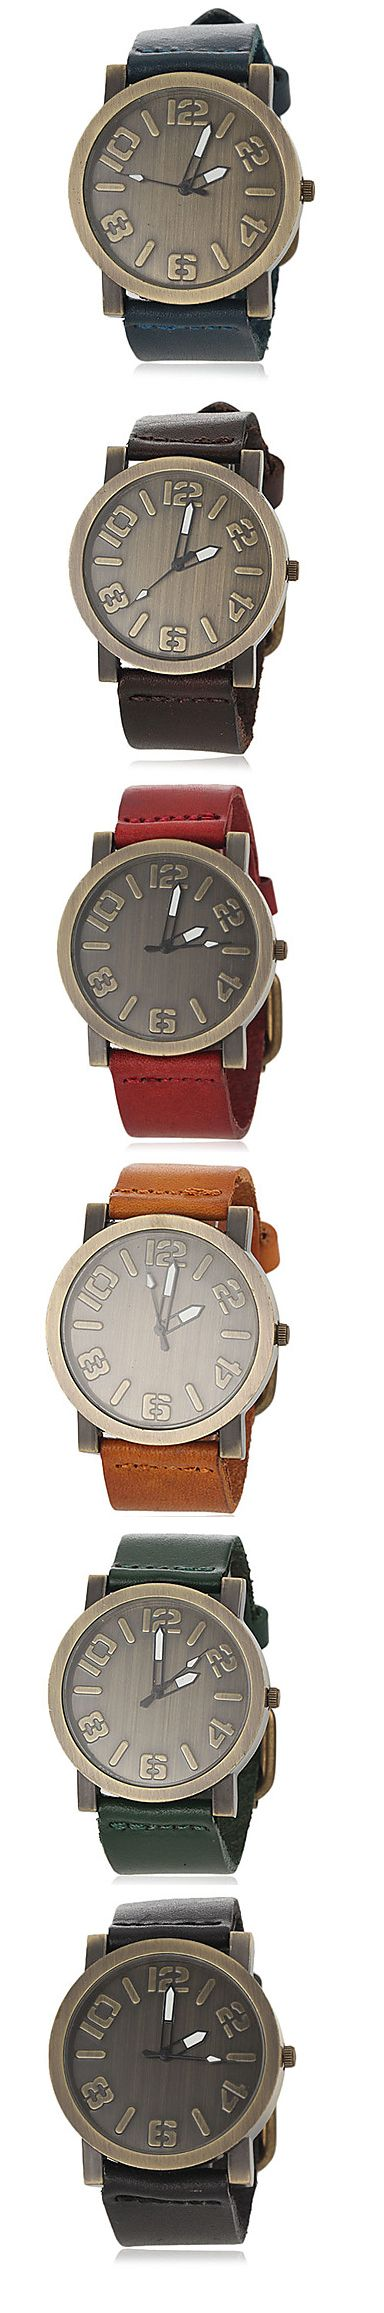 Look at these amazing retro quartz wrist watches! They come in several colors. Click on the picture to see more.